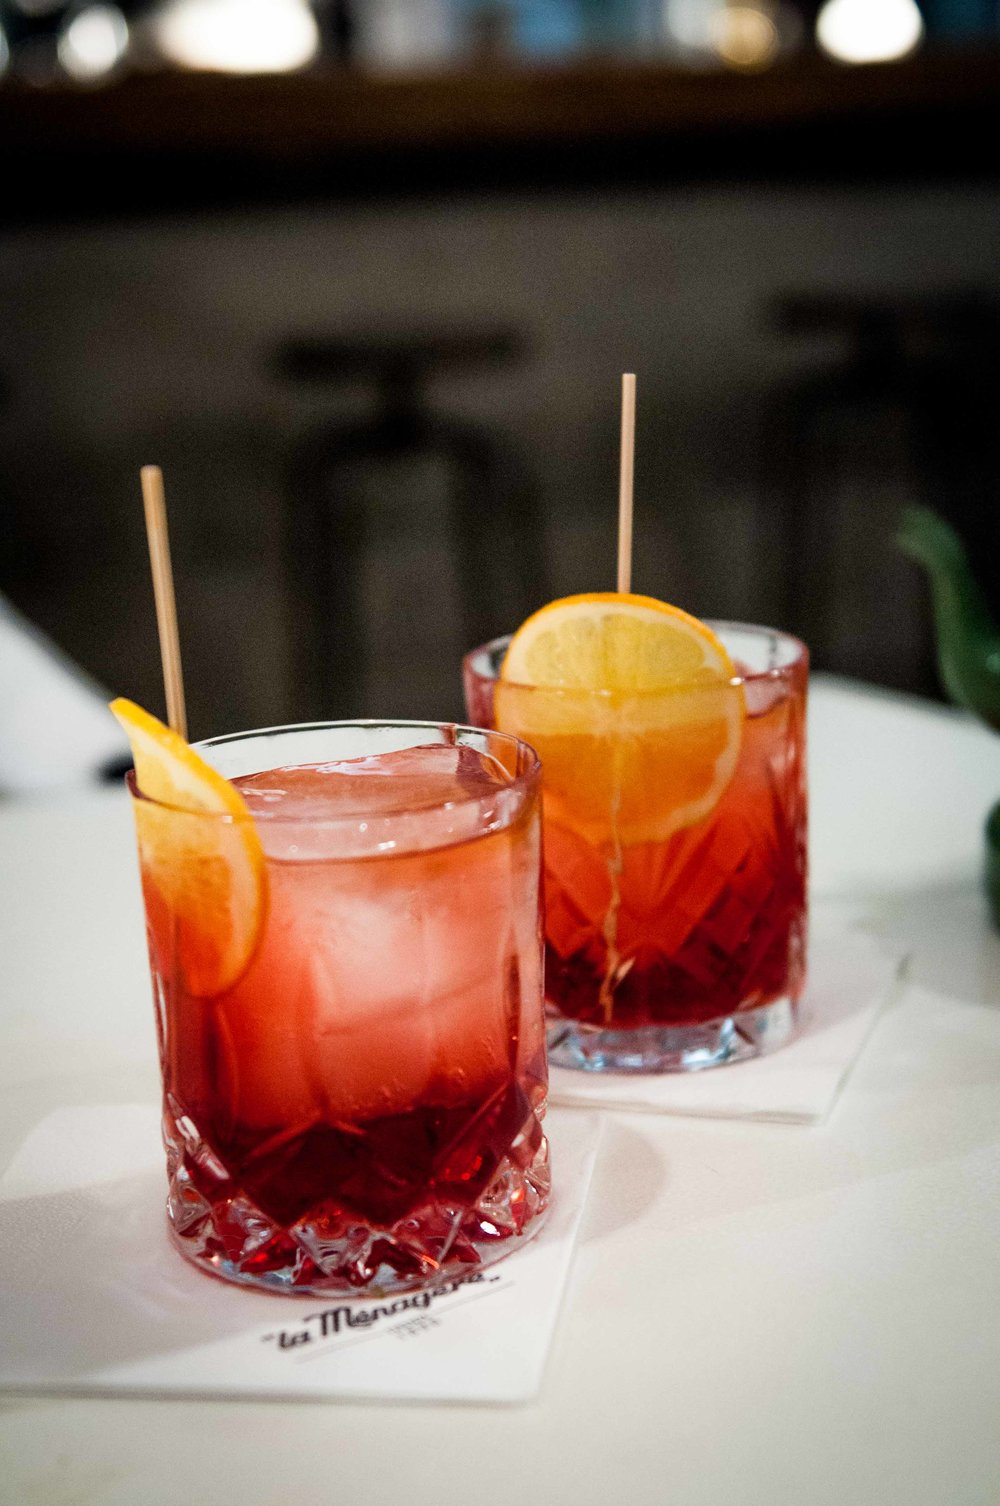 Cin cin! Nothing like the classic - The Italian Negroni :)